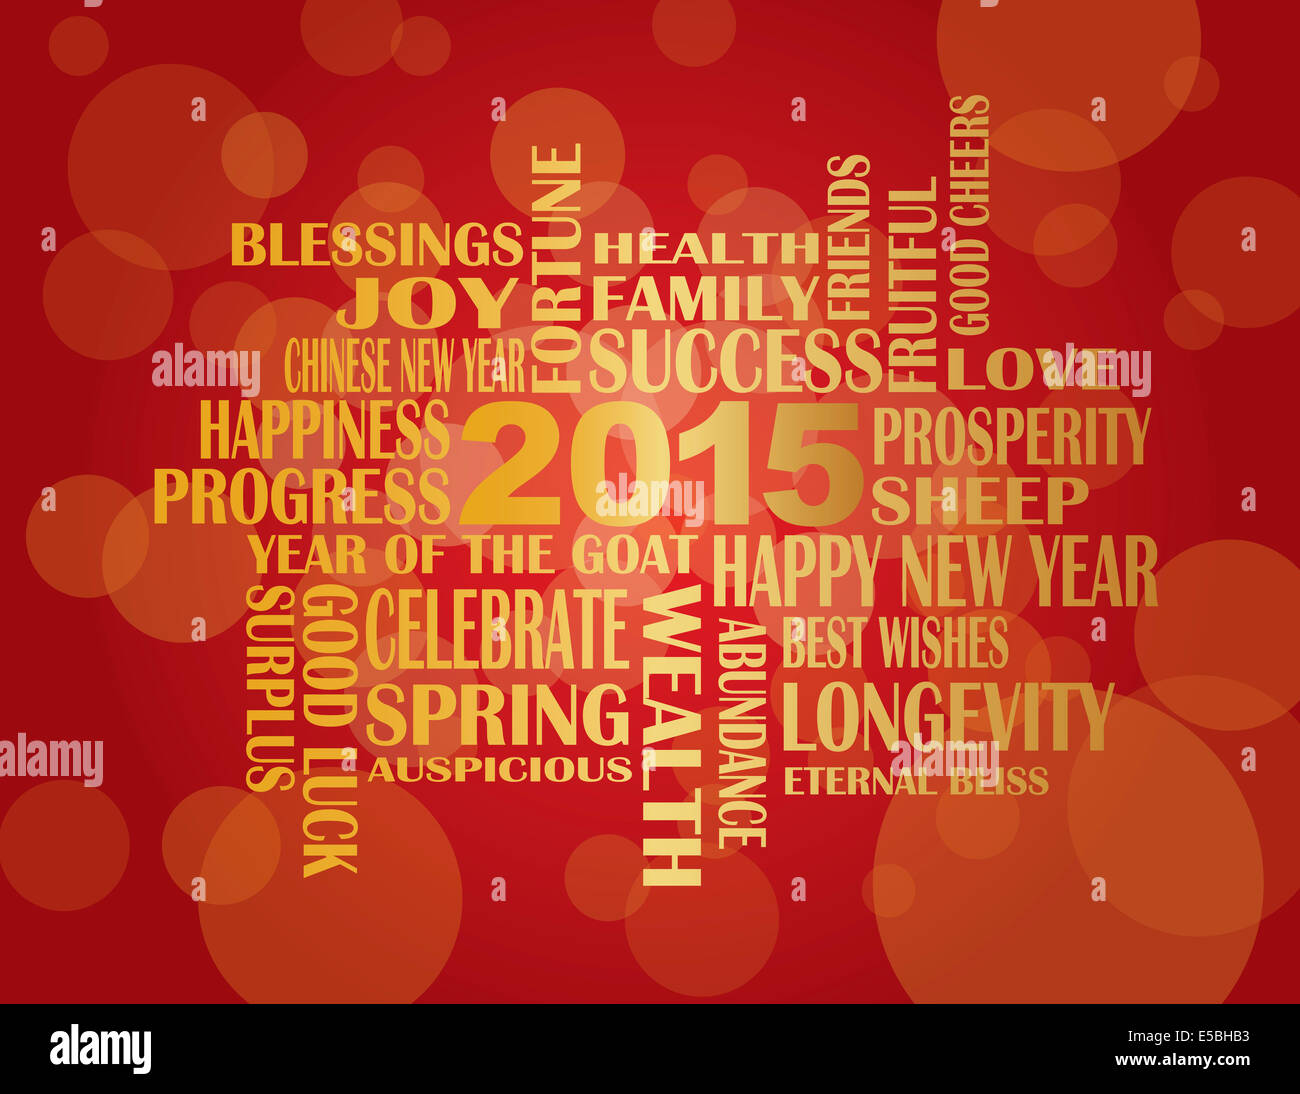 2015 Chinese Lunar New Year English Greetings Text Wishing Health